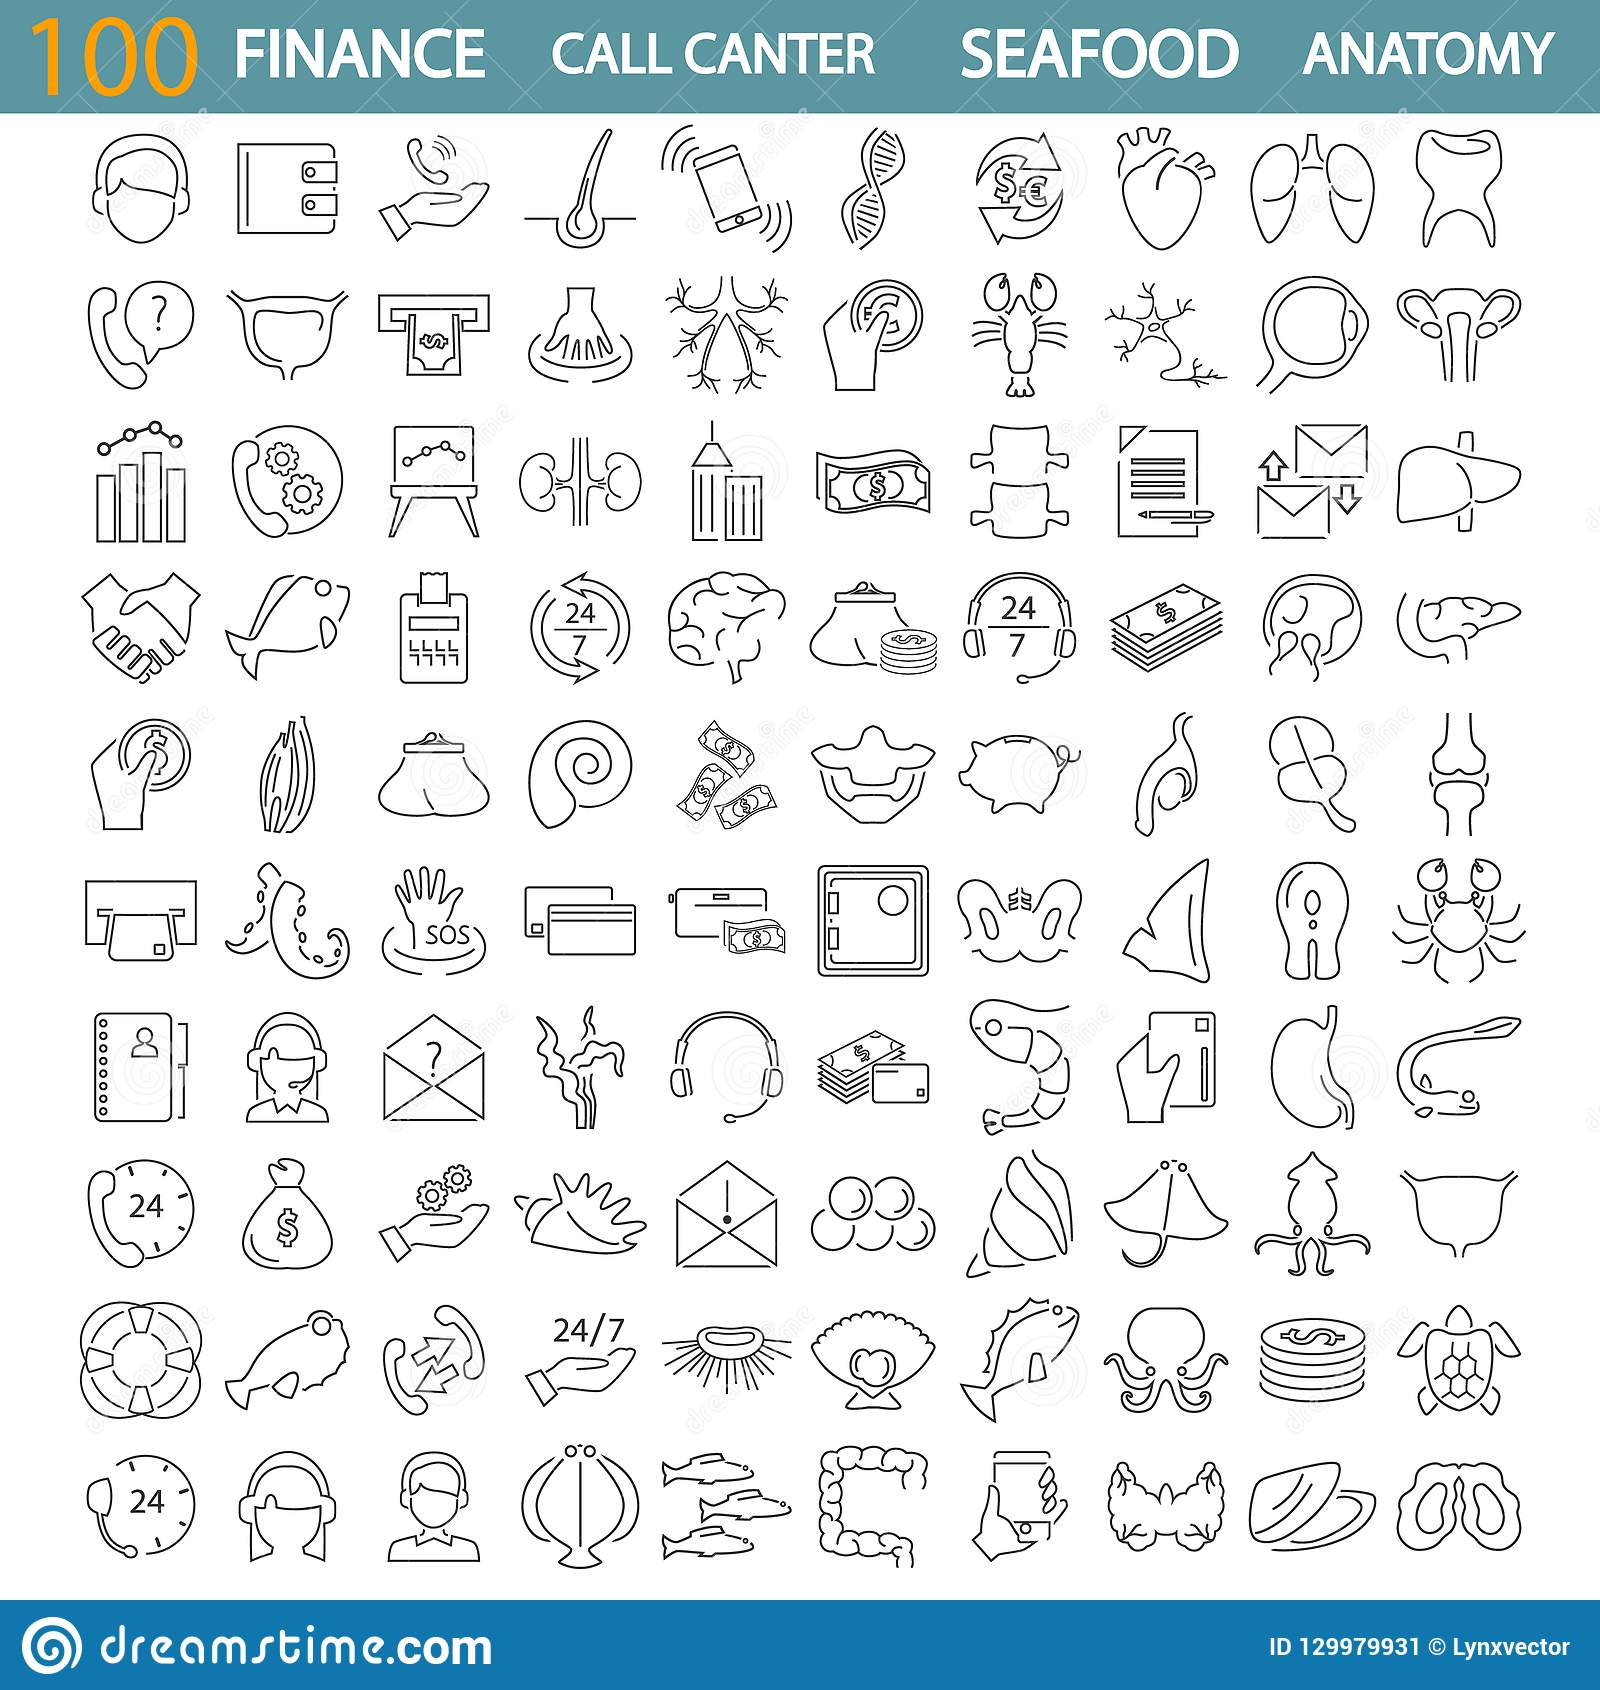 Sea food. Call center service. Banking and finance. Human anatony line icons set